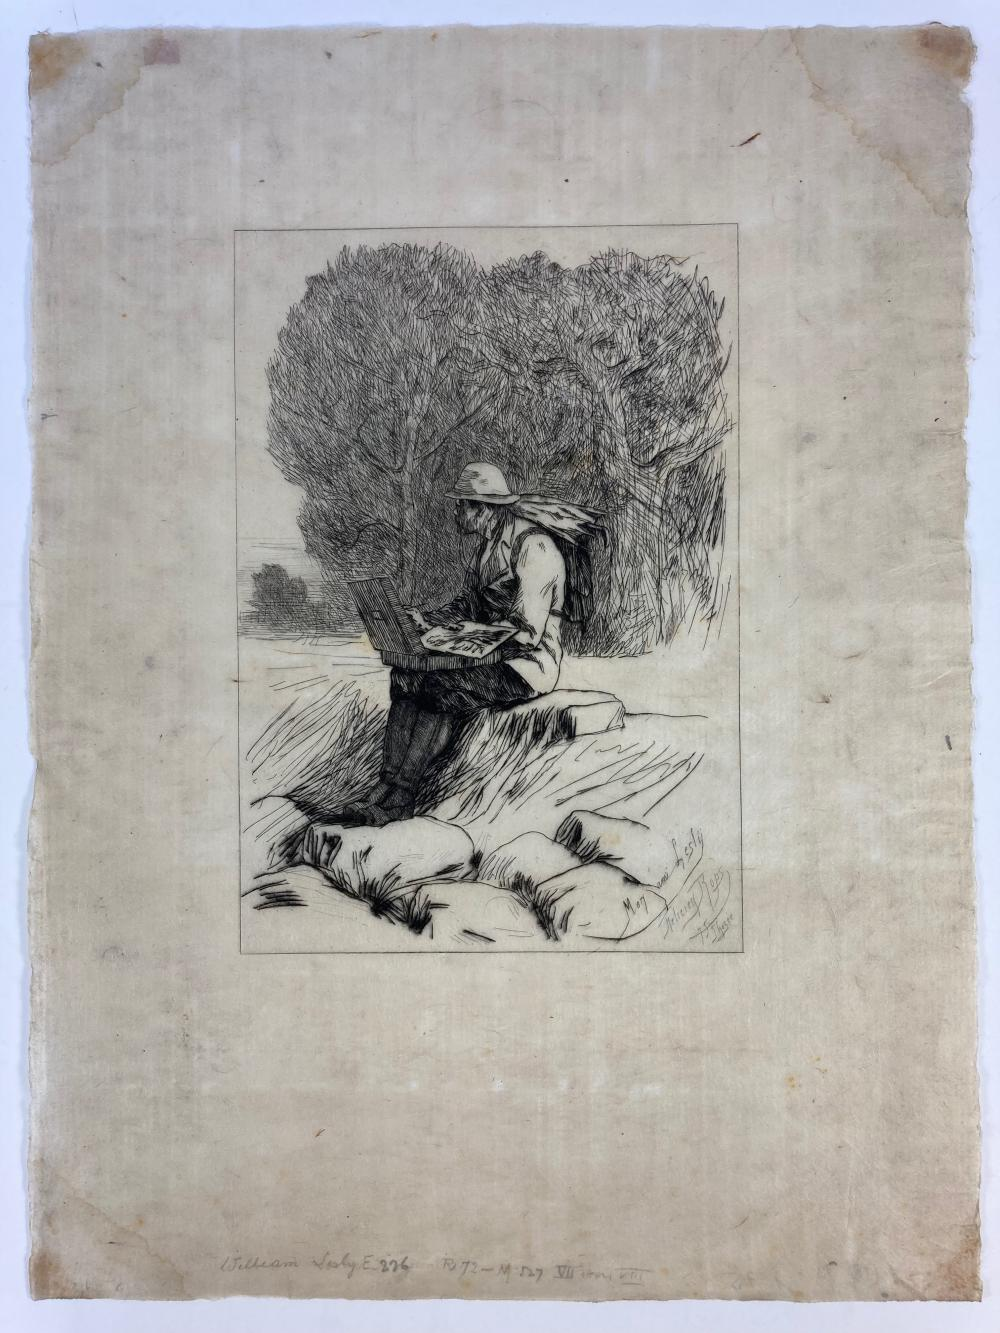 """ROPS, Félicien (1833-1898). (""""William Lesly""""). (1875). Etching on Japanese paper. 233 x"""